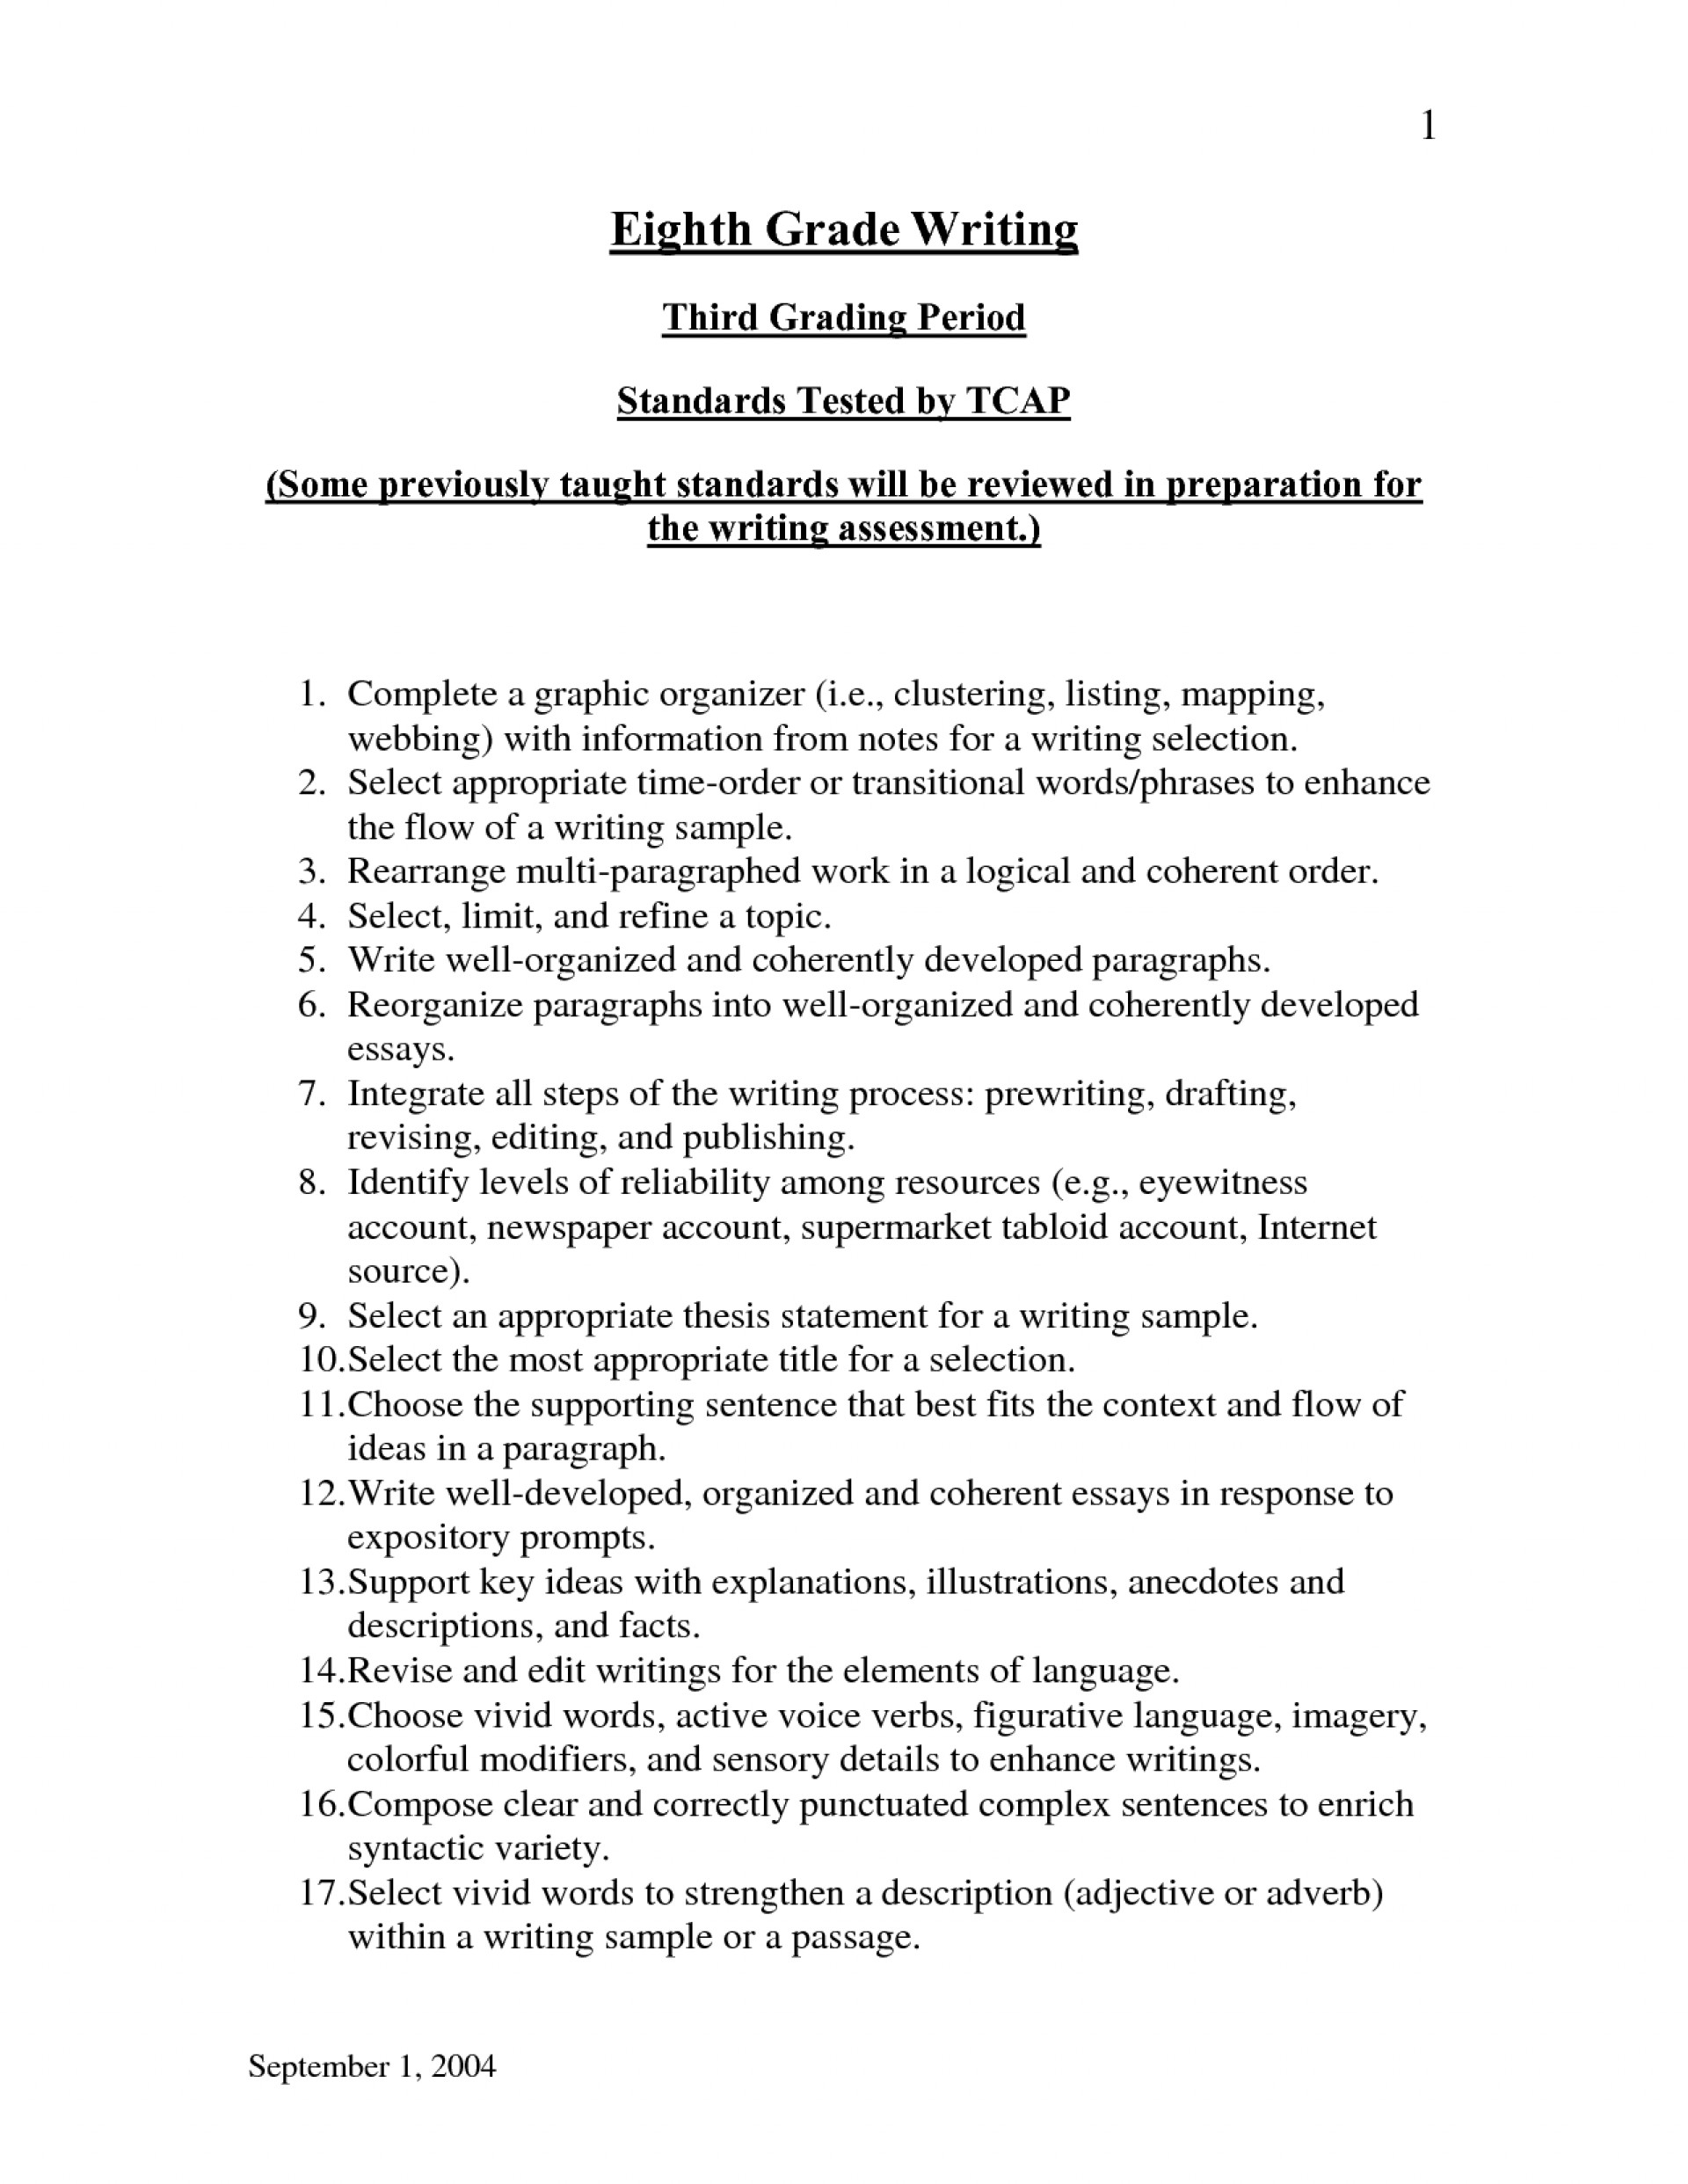 012 Essay Example What Is An Expository Writing Prompts For High School 1088622 Magnificent Powerpoint Are Some Topics Gcu 1920